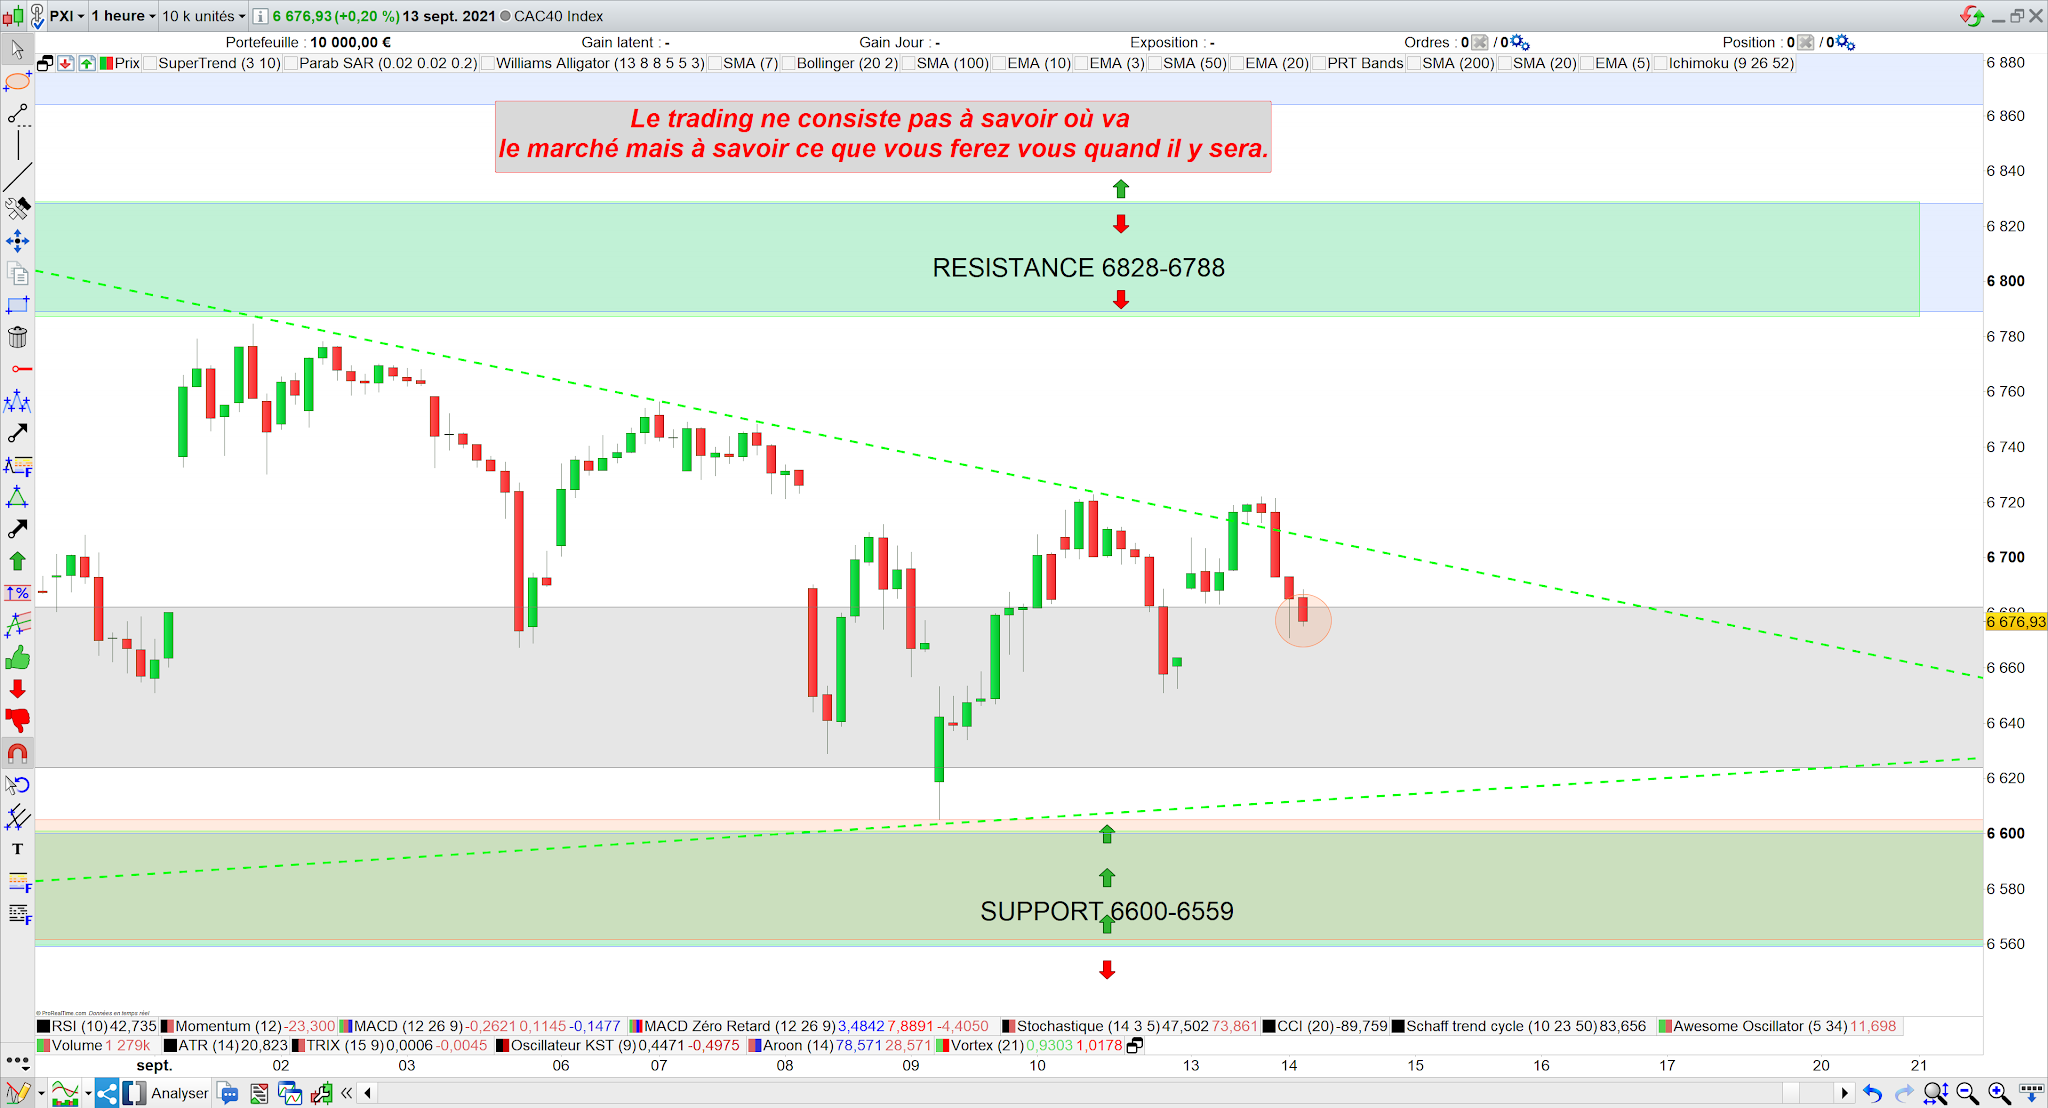 Trading cac40 14/09/21